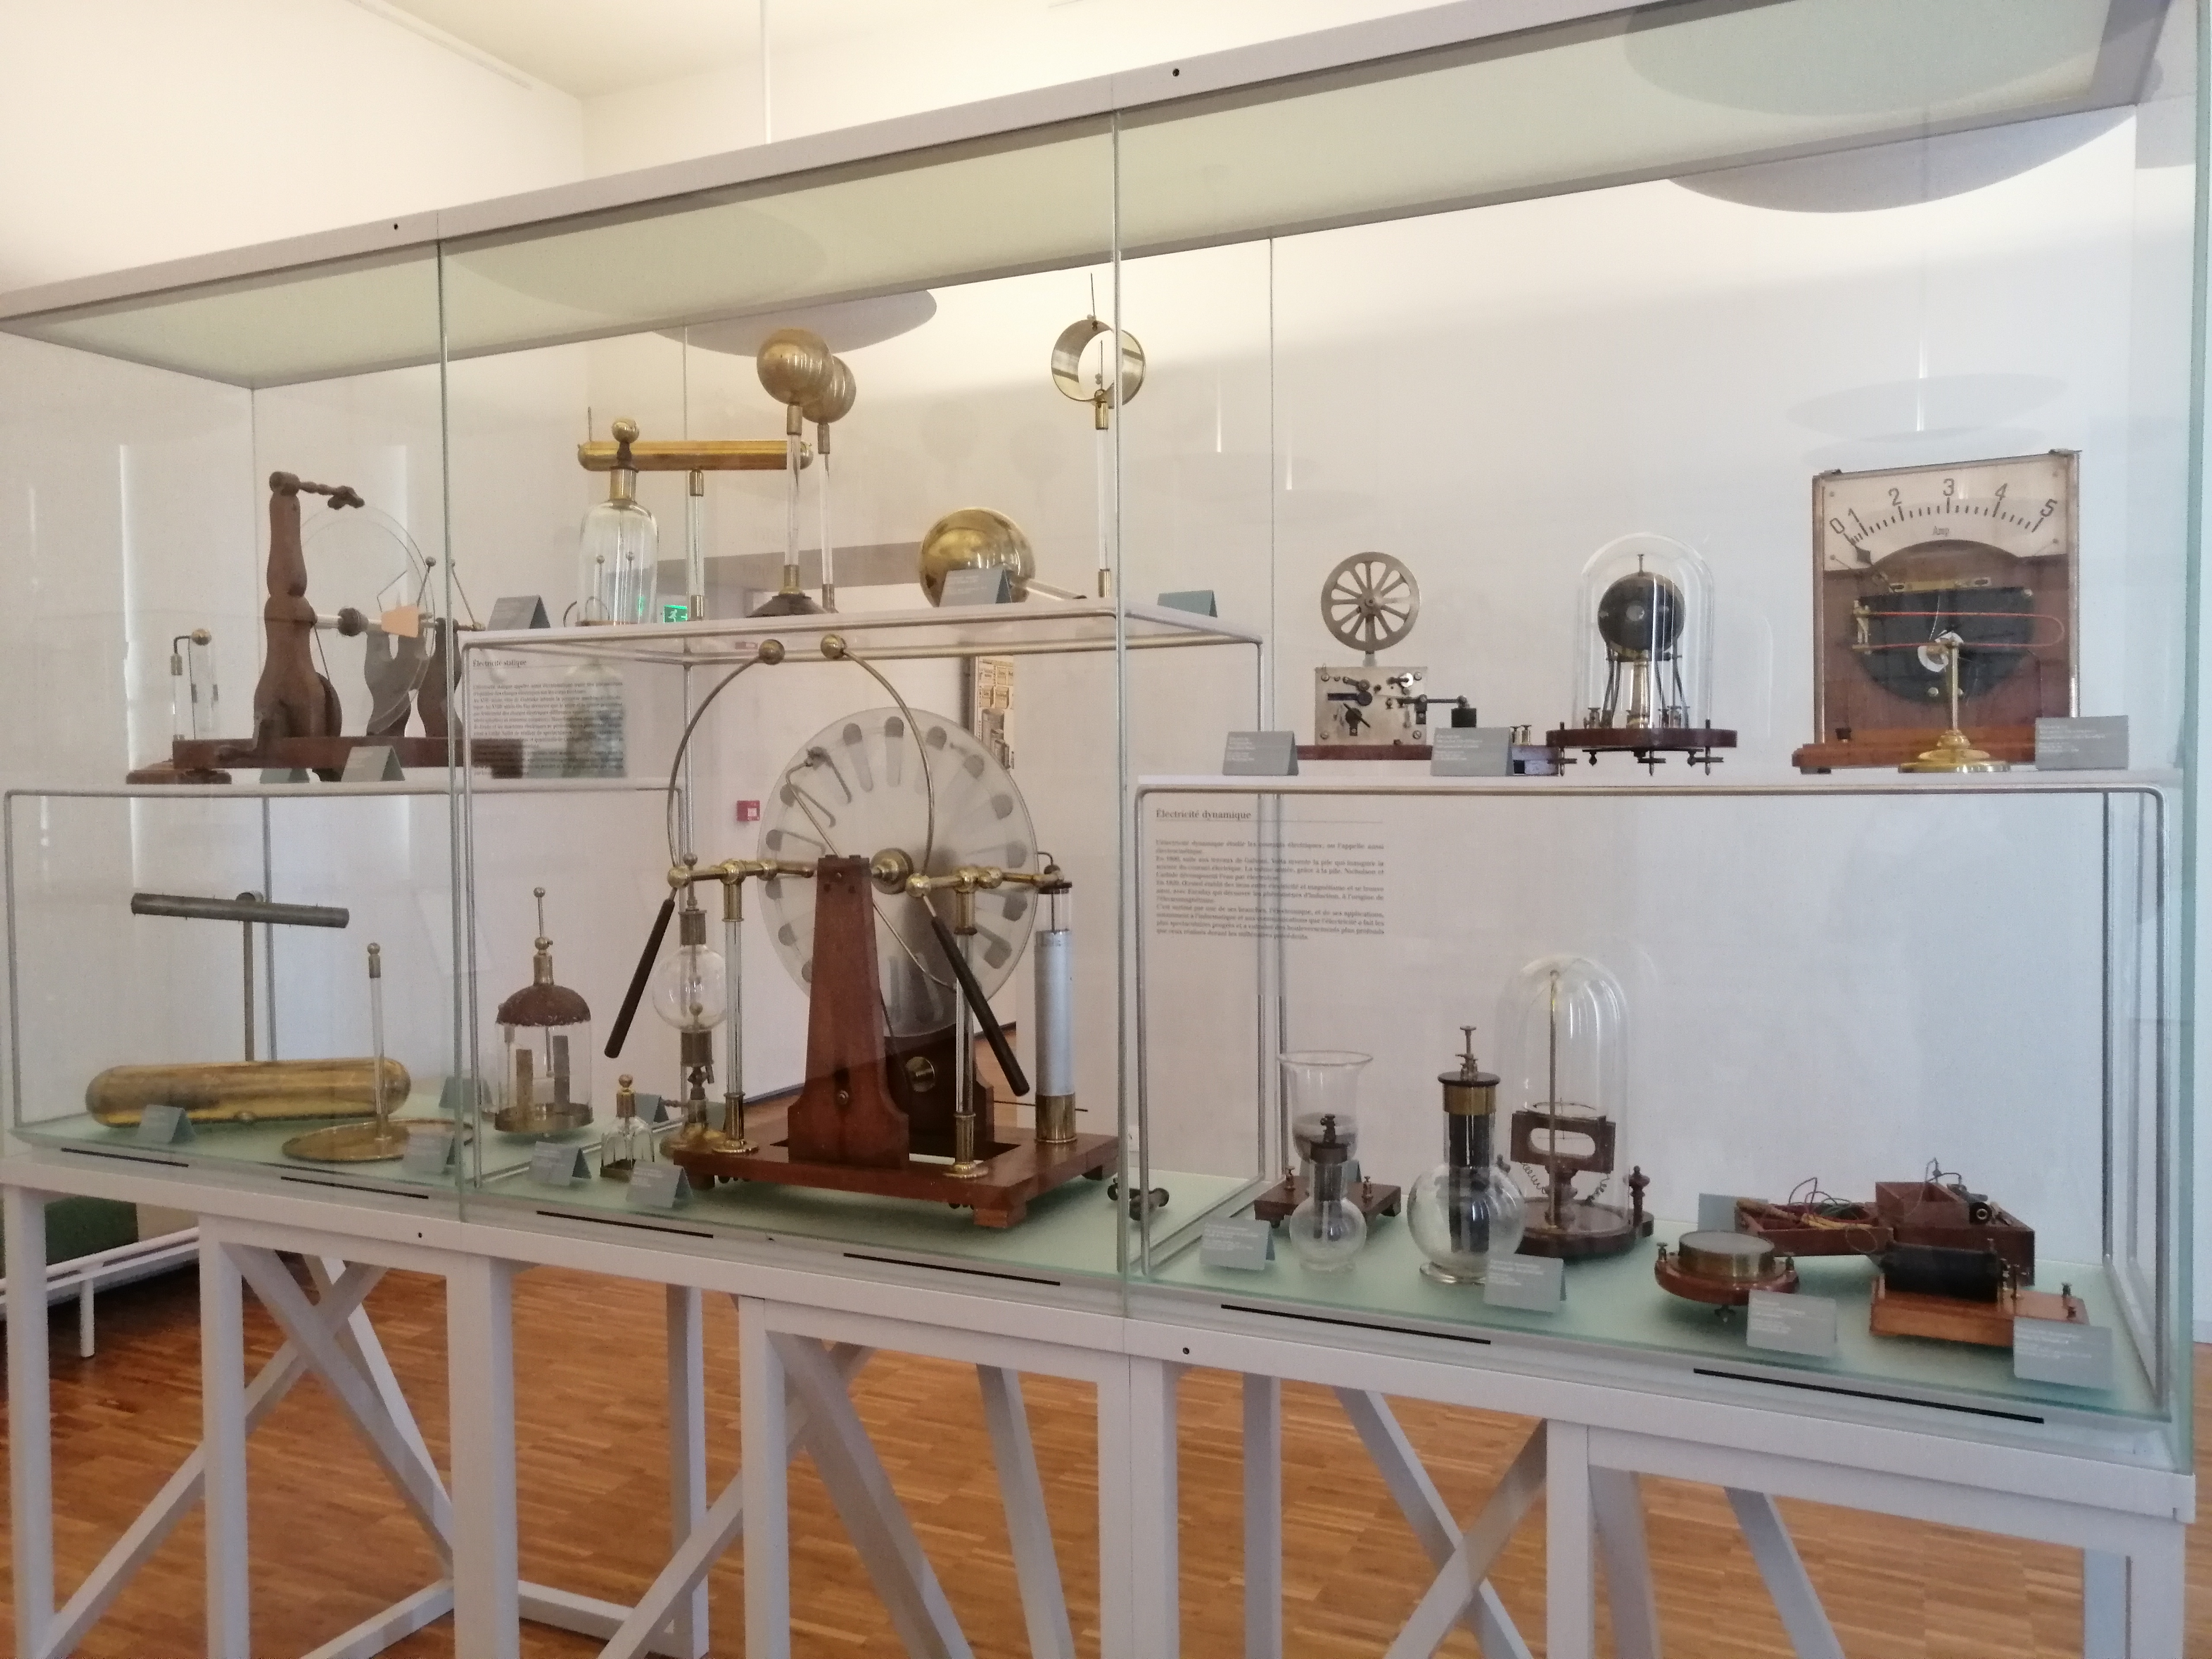 Conservatory of Education and Scientific Objects. Museum Bernard d'Agessci - Niort